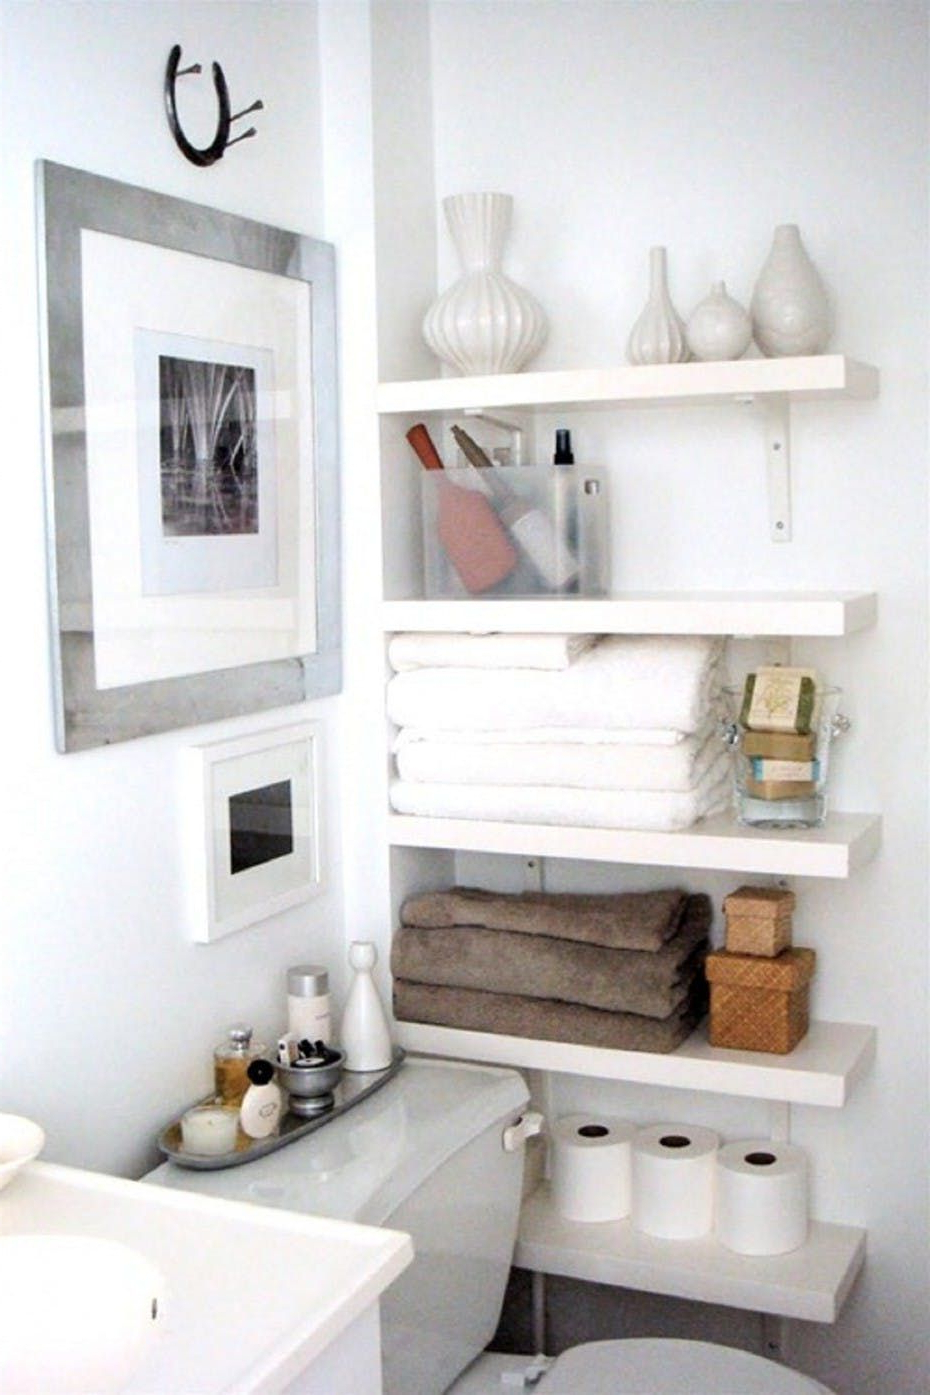 No More Small Bathroom Woes 6 Places To Add Shelving For